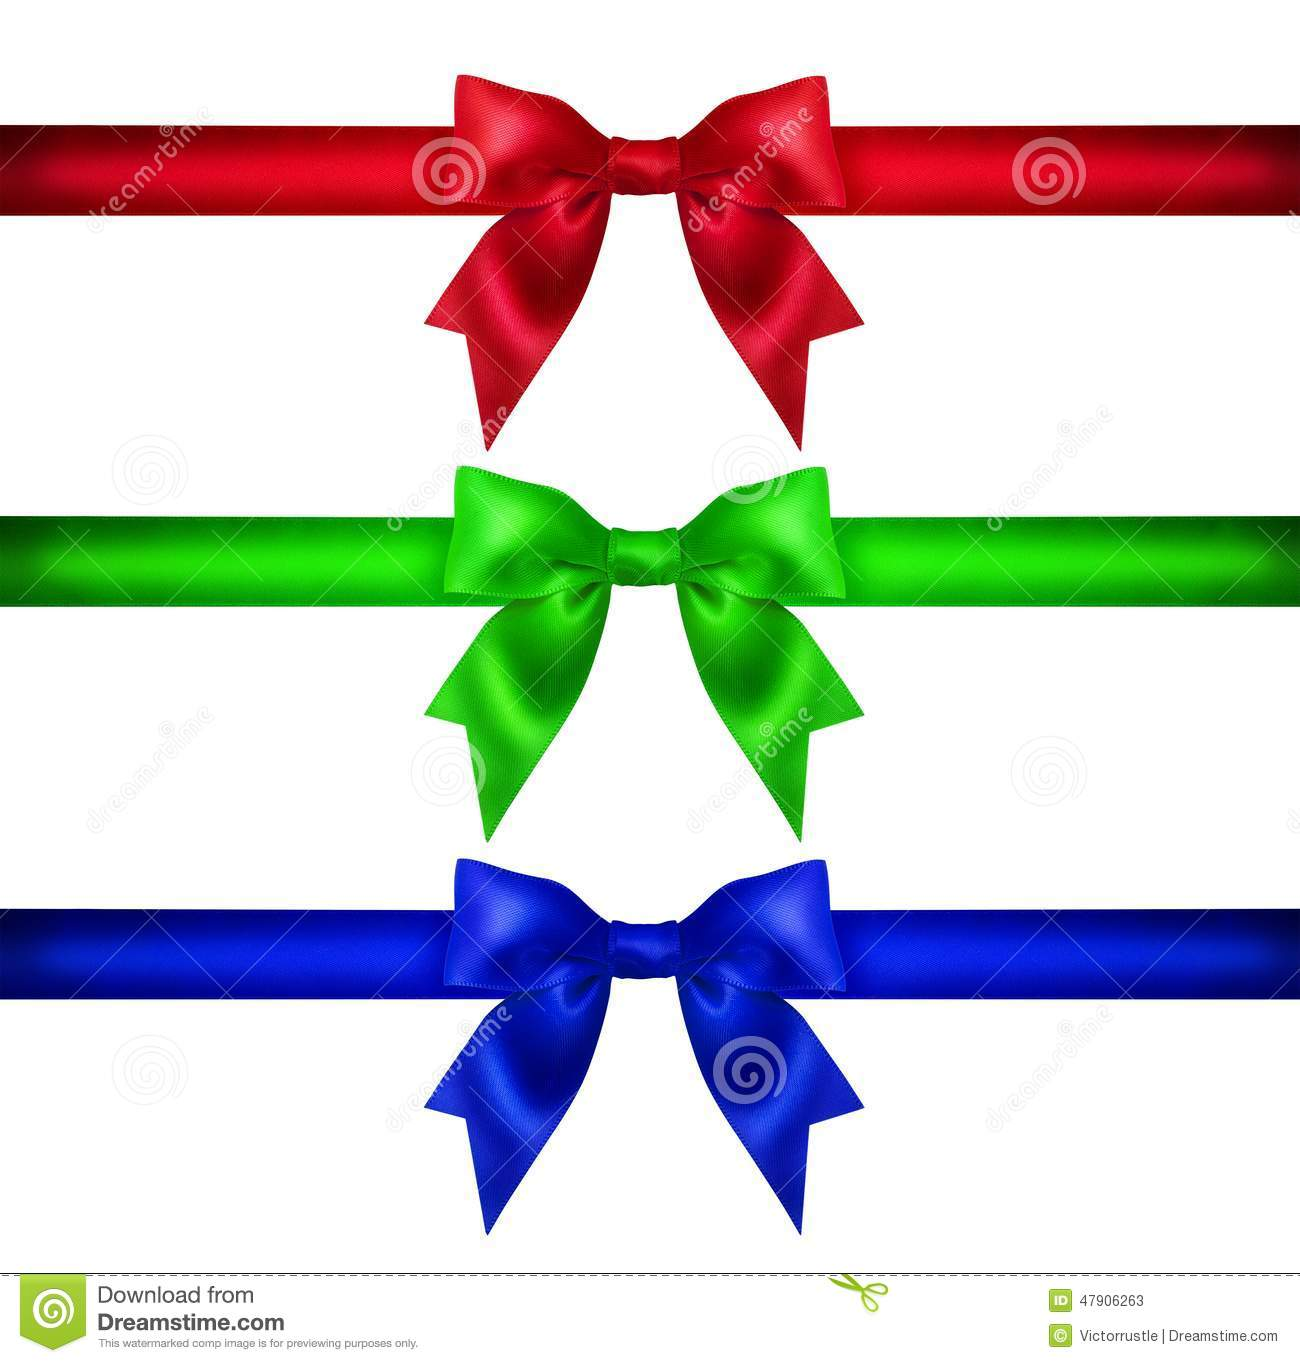 Set for design red blue green christmas ribbon bow gift